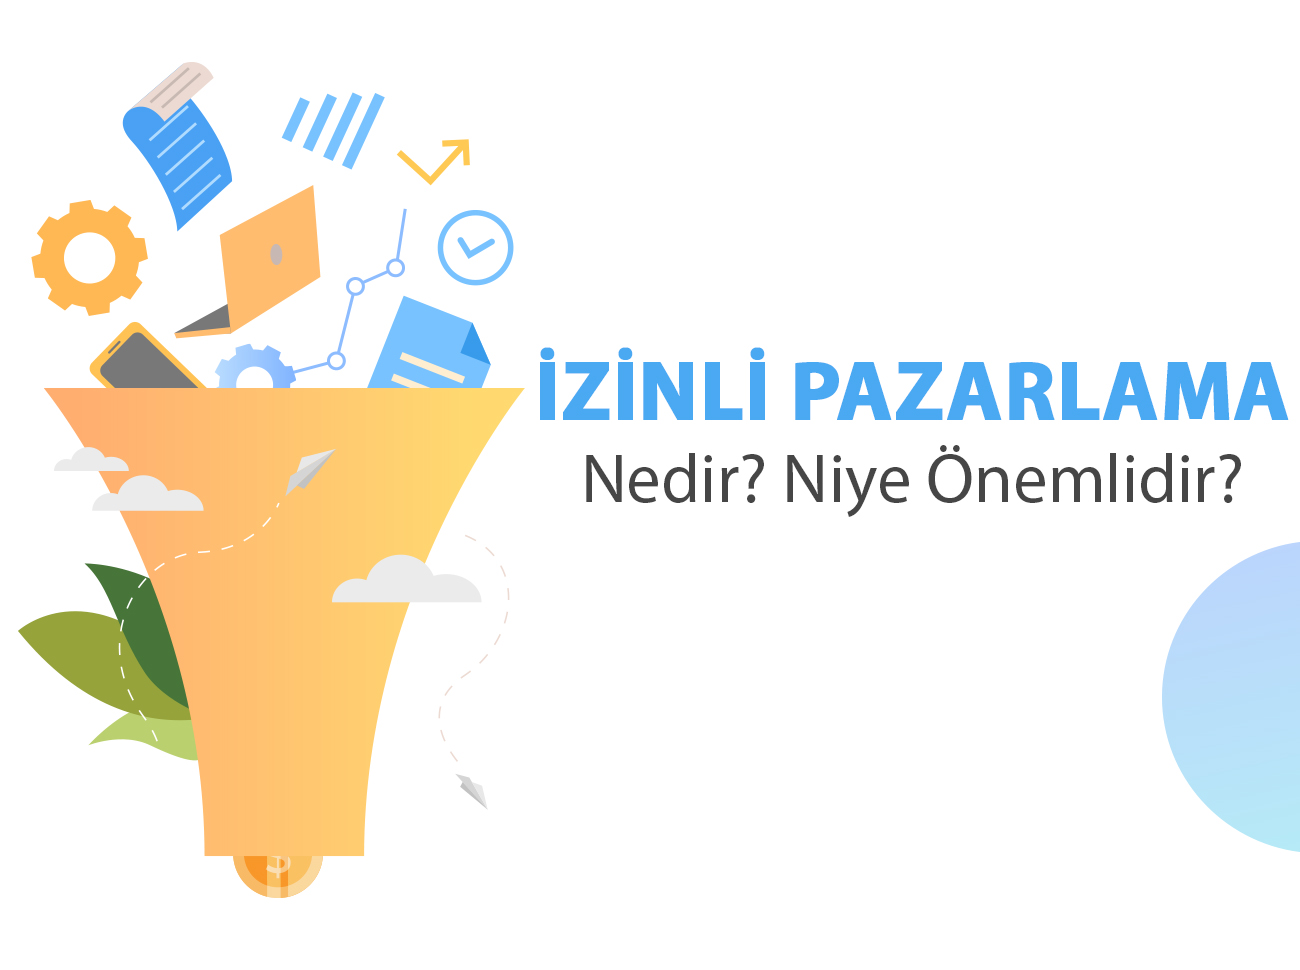 İzinli Pazarlama (Permission Marketing) Nedir?